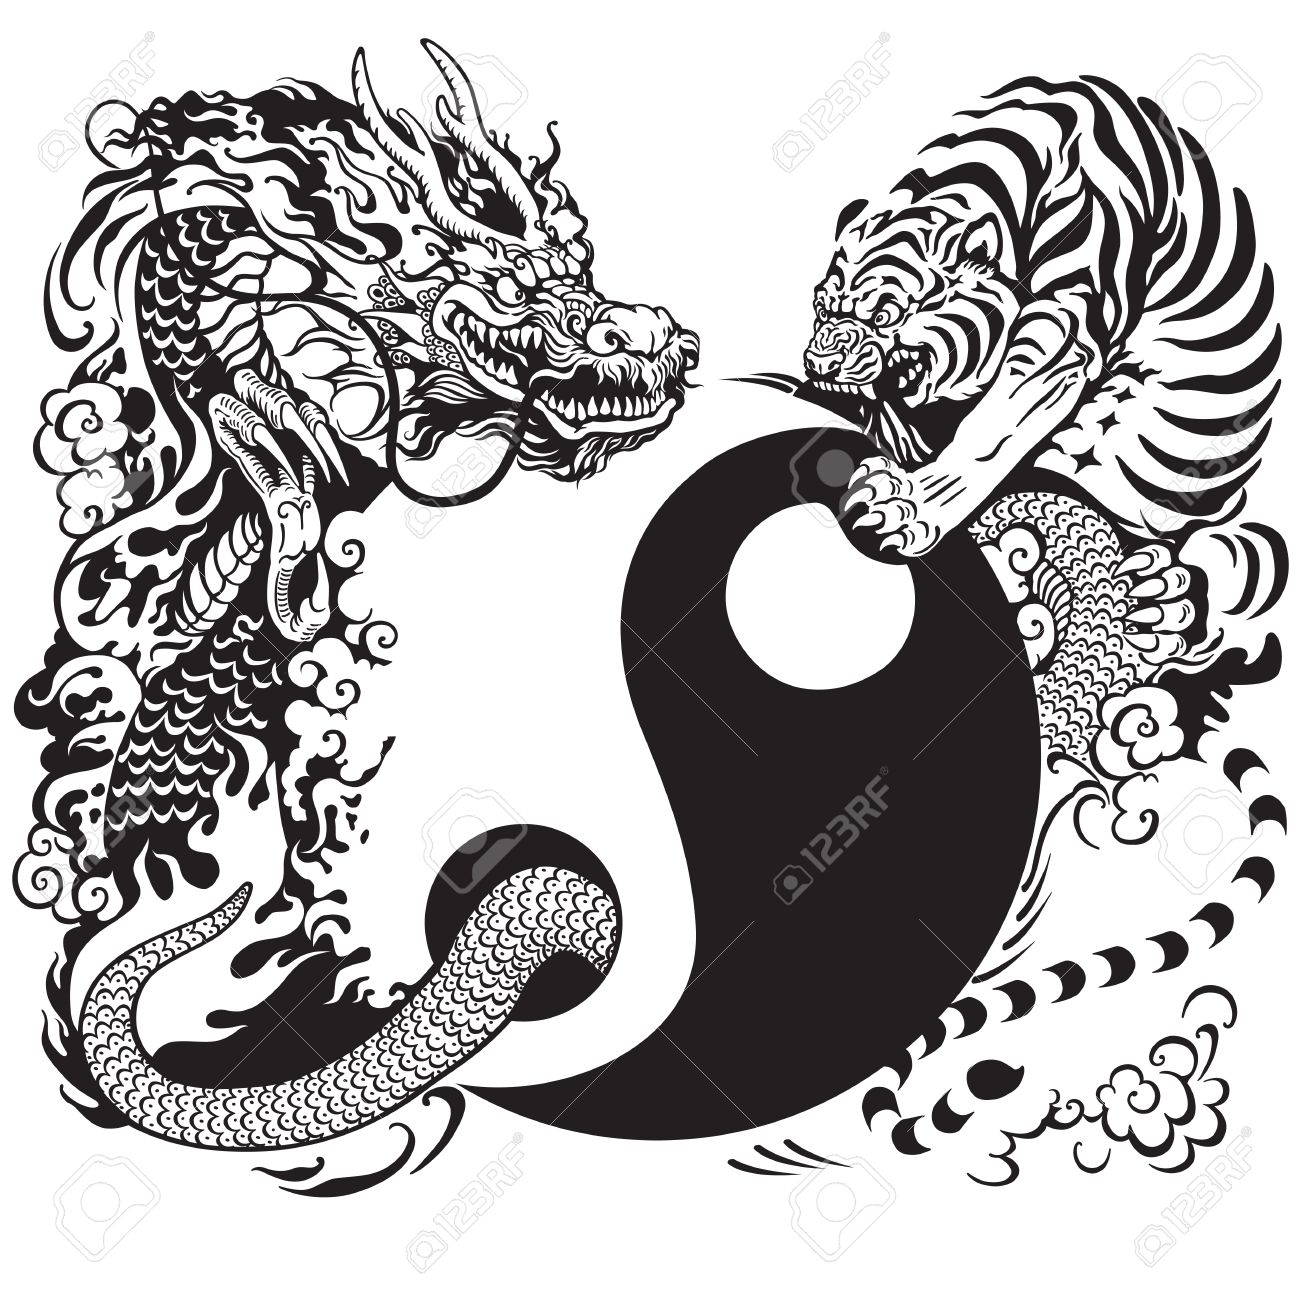 Yin Yang Symbol With Dragon And Tiger Fighting Black And White